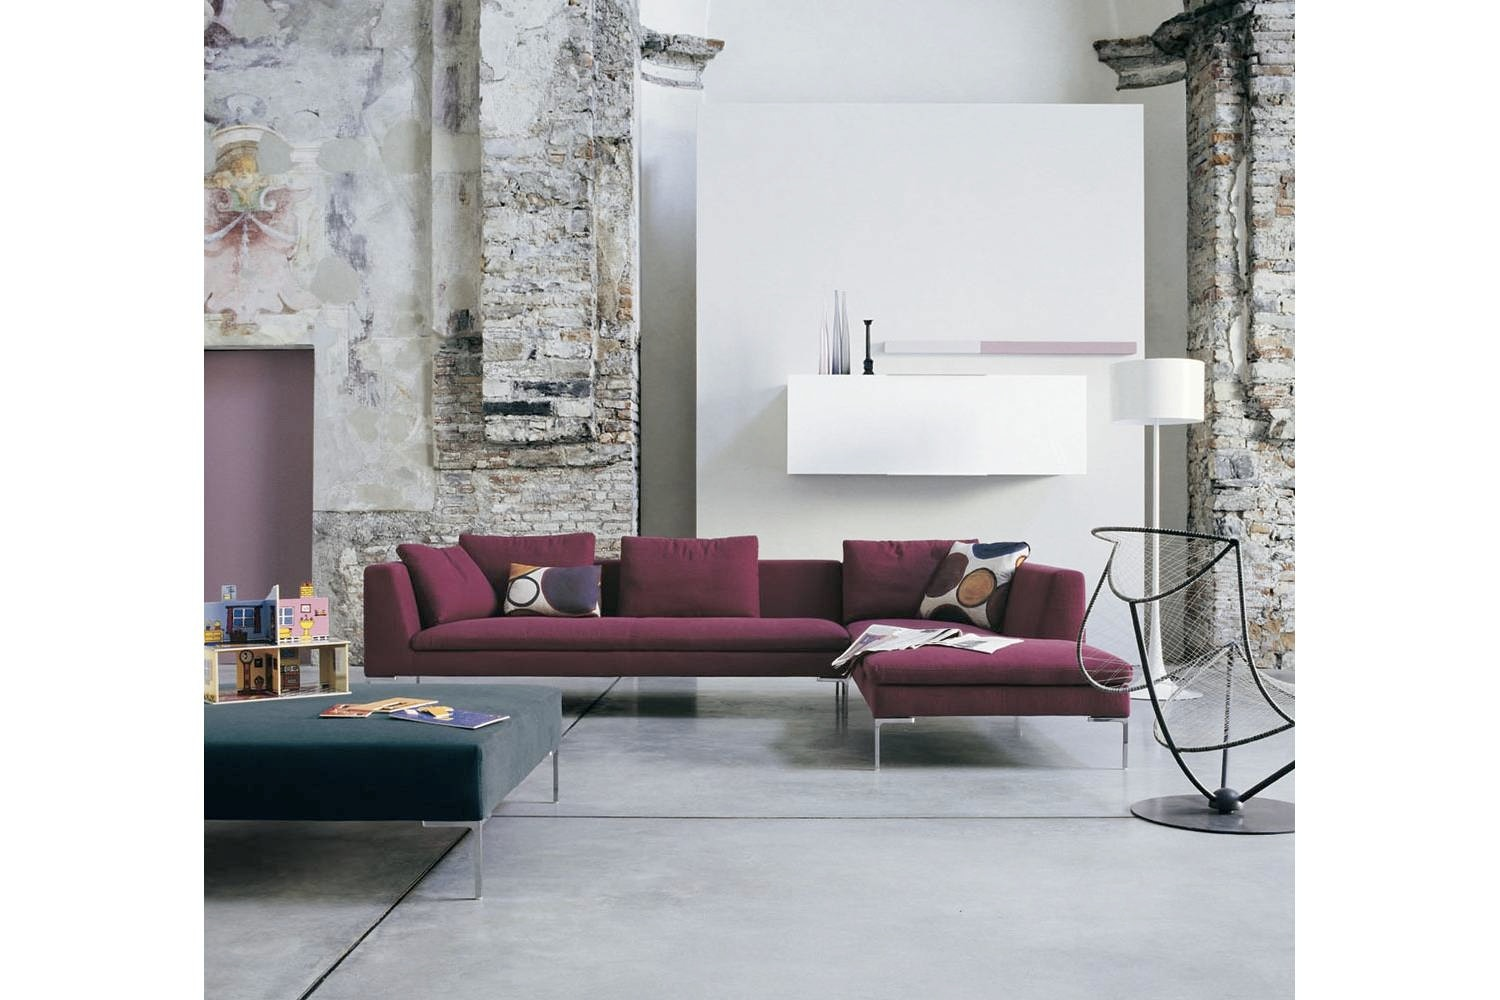 Charles Sofa with Right Chaise in Light Fabric by Antonio Citterio for B&B Italia